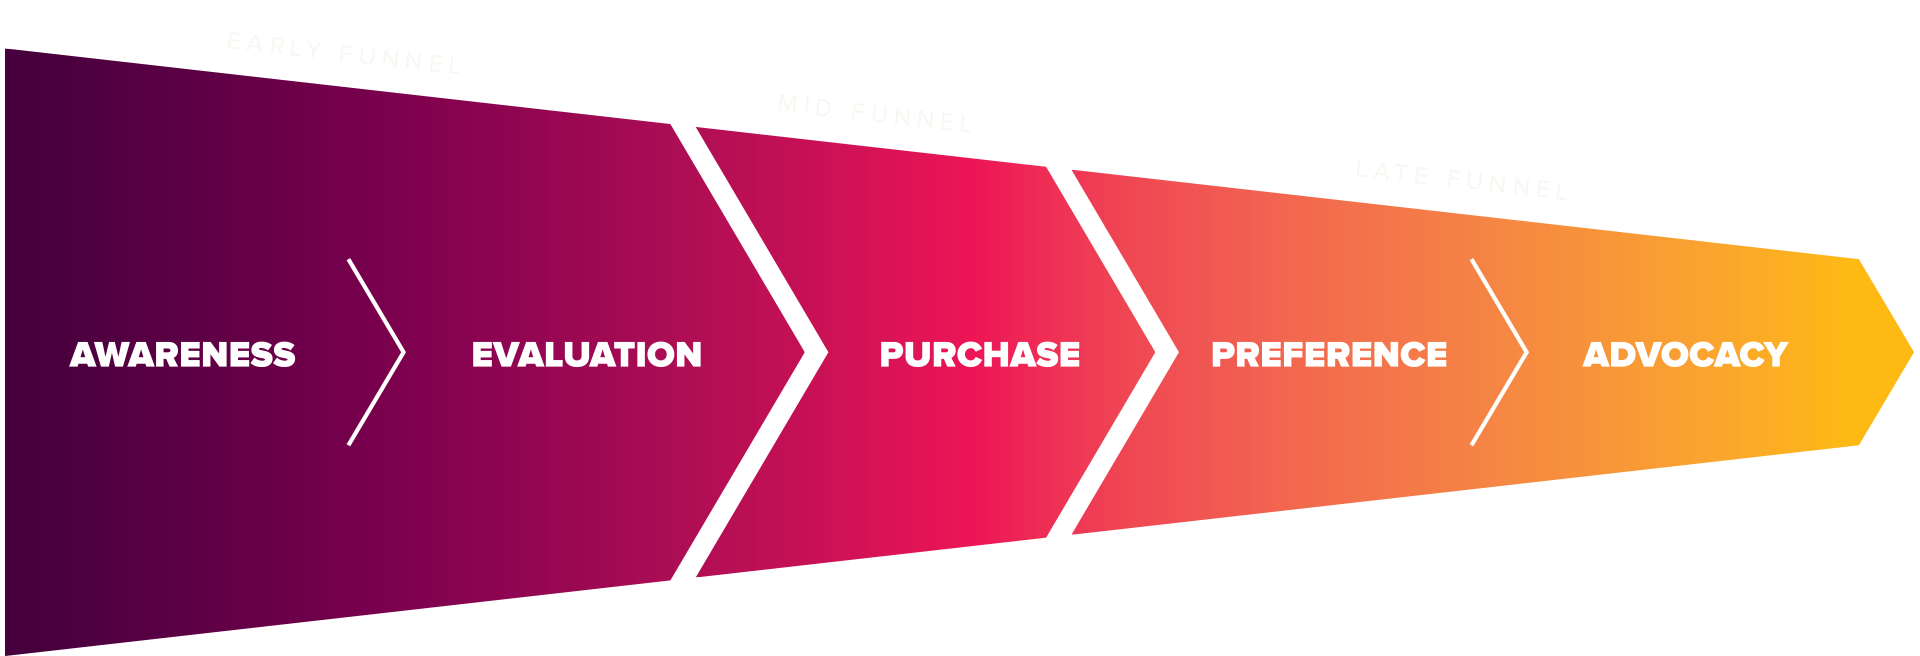 Customer Journey and marketing funnel